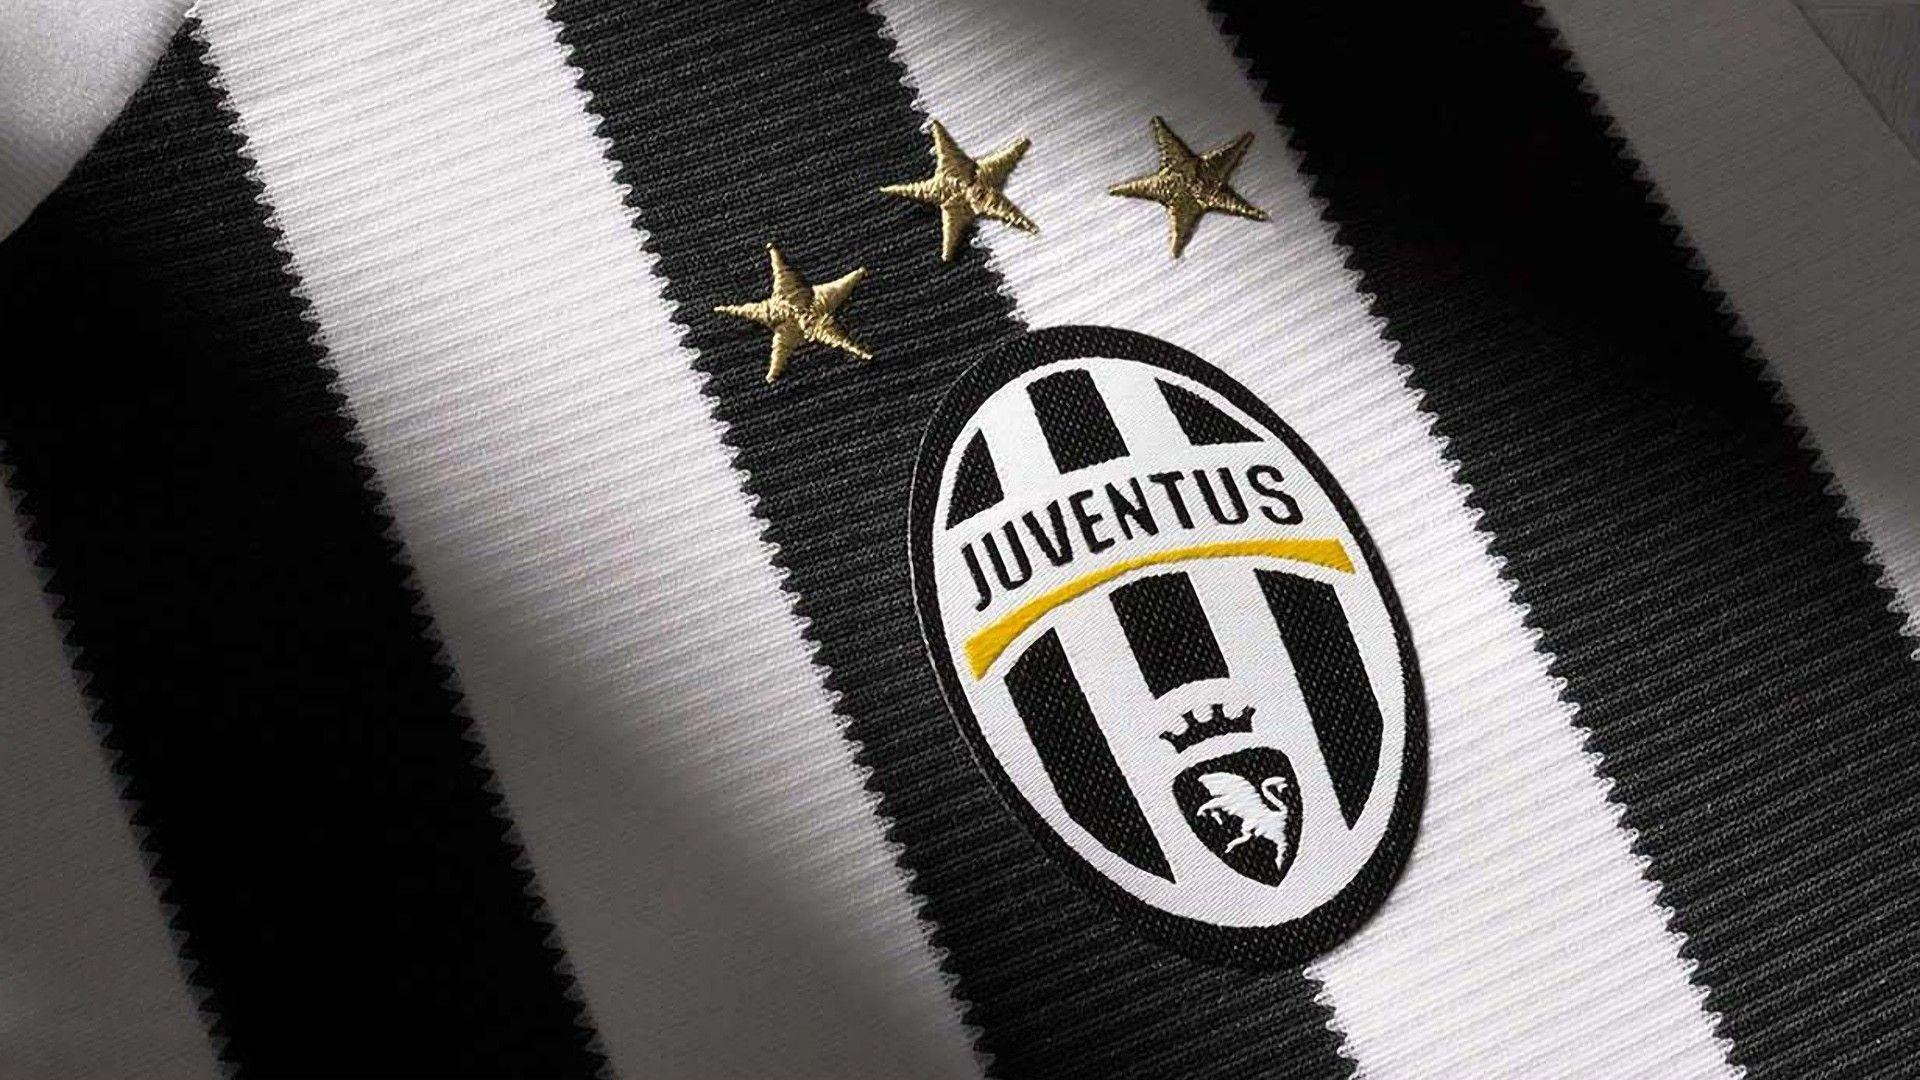 Juventus Wallpaper, Picture, Image - 1920x1080, 1366x768 and other